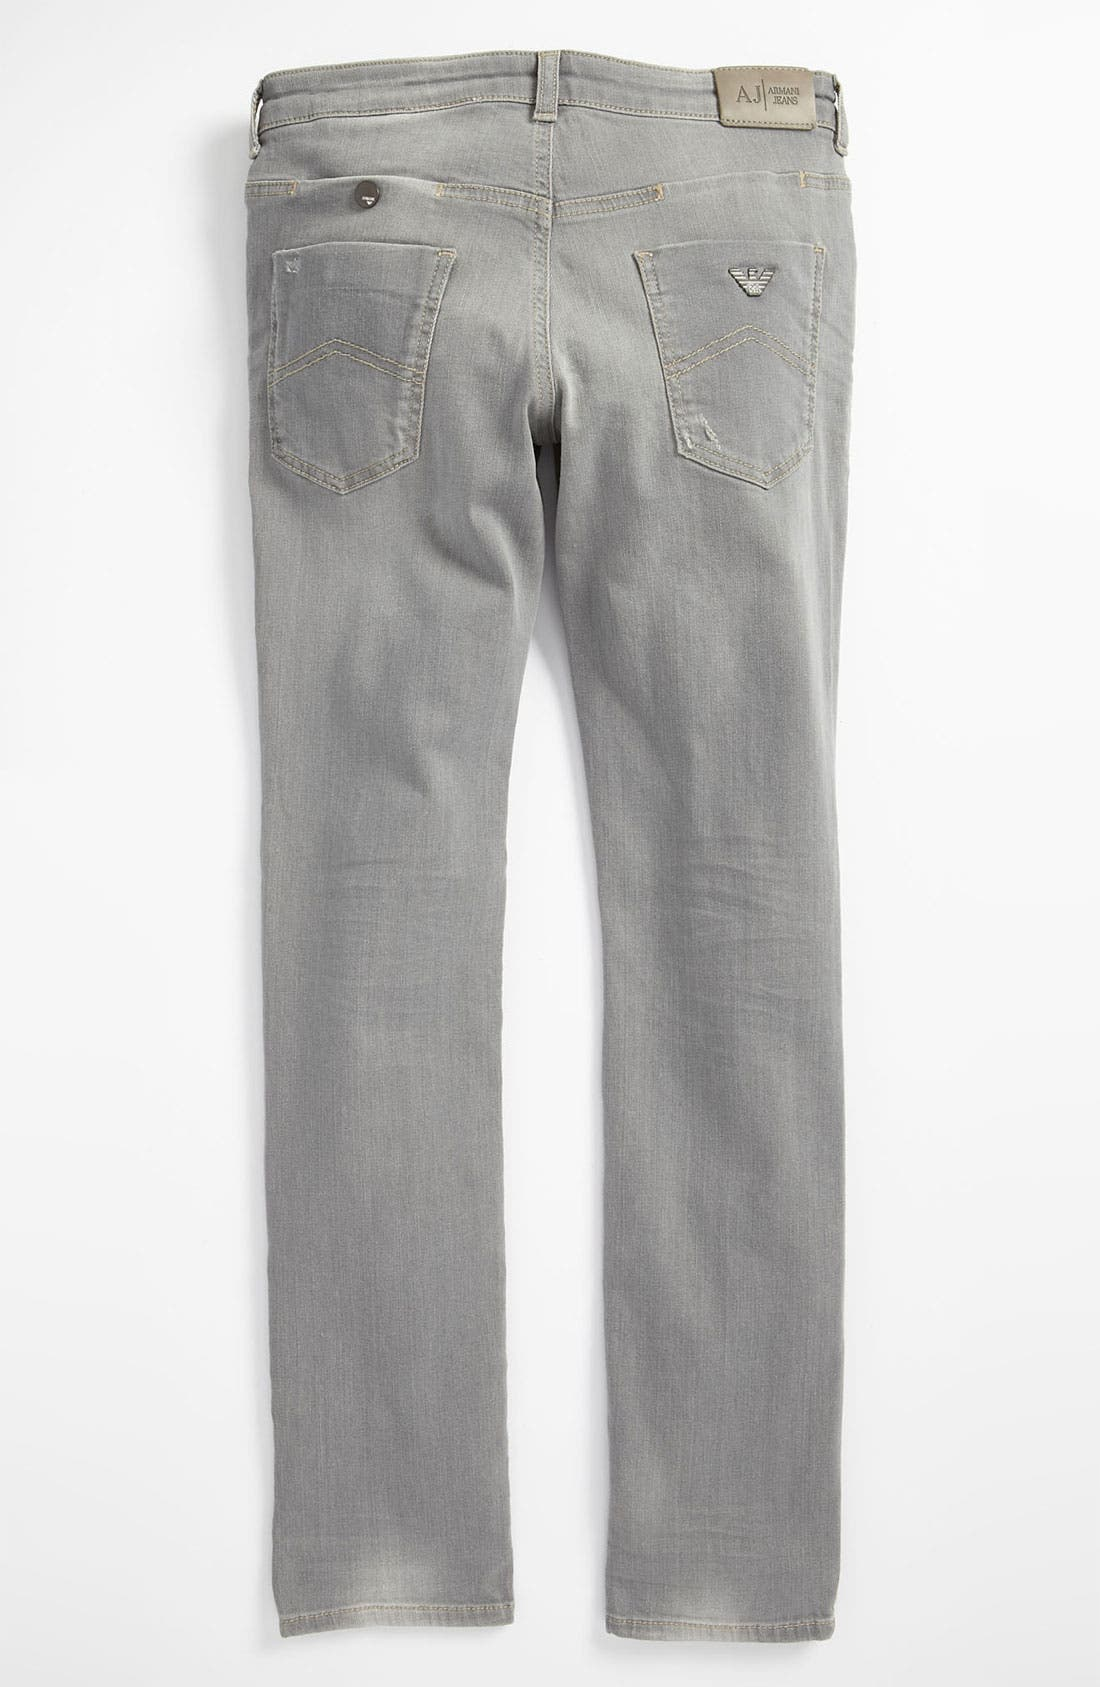 Alternate Image 1 Selected - Armani Junior Slim Jeans (Big Boys)